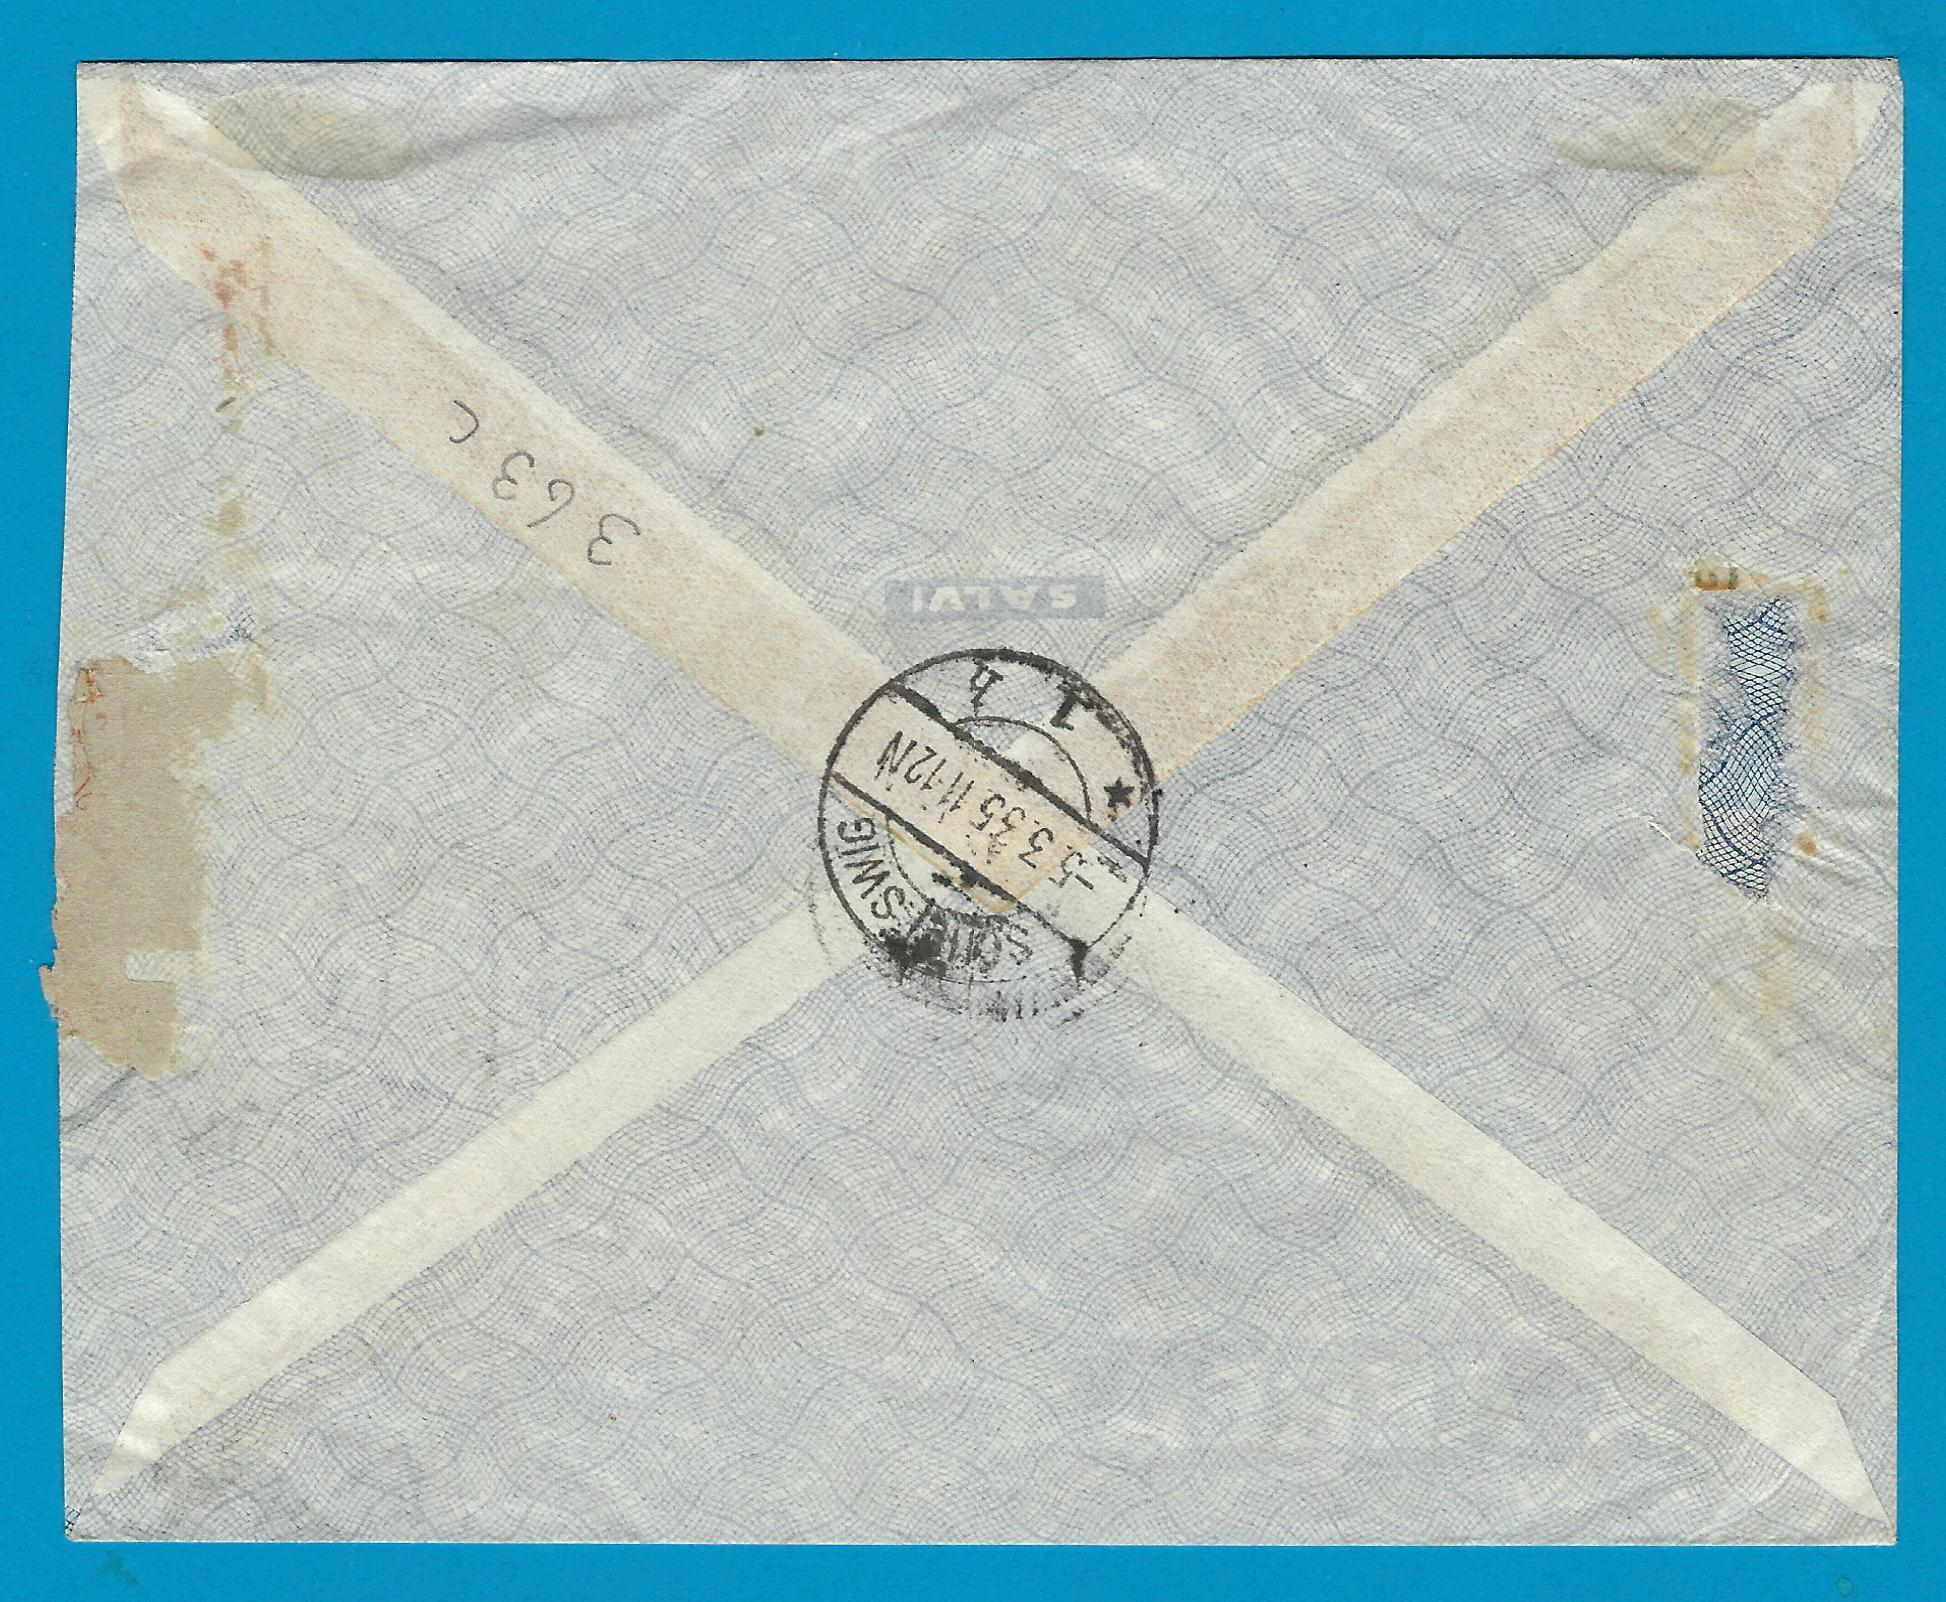 PARAGUAY R air cover 1935 Asuncion to Germany